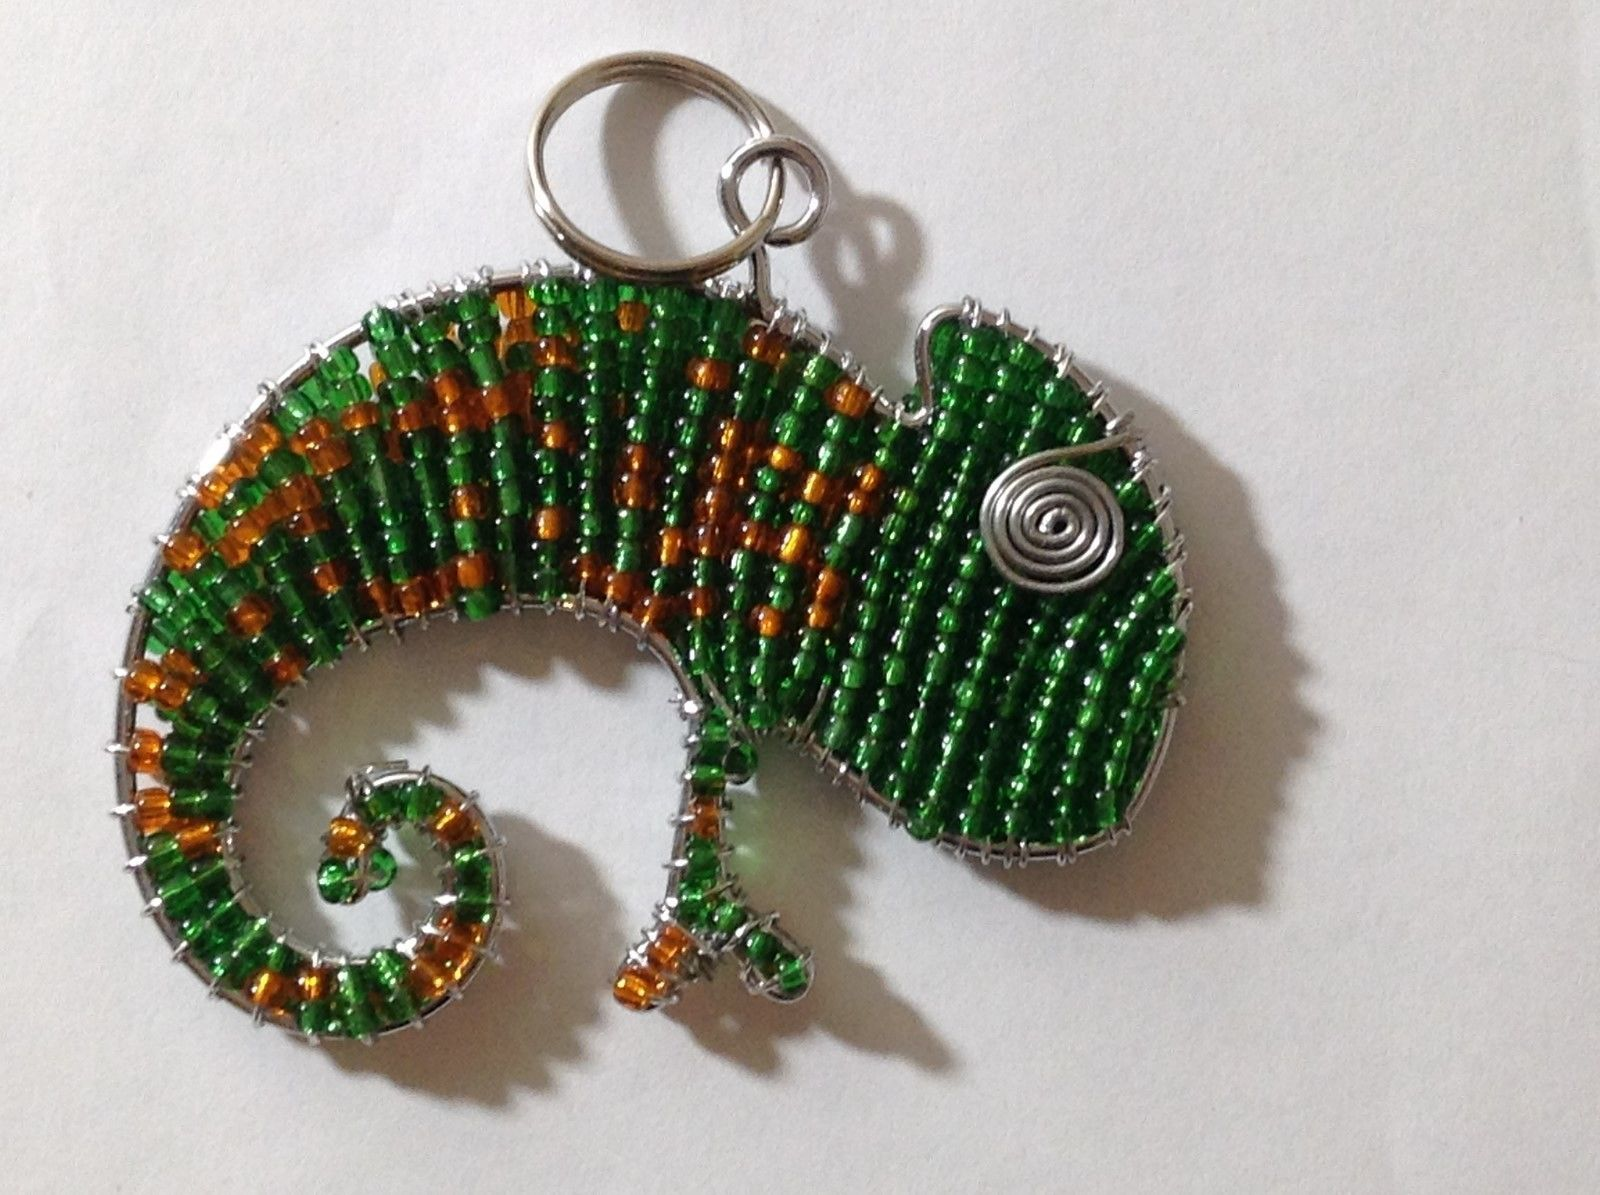 NEW Hand Beaded Green and Orange Chameleon Key Chain